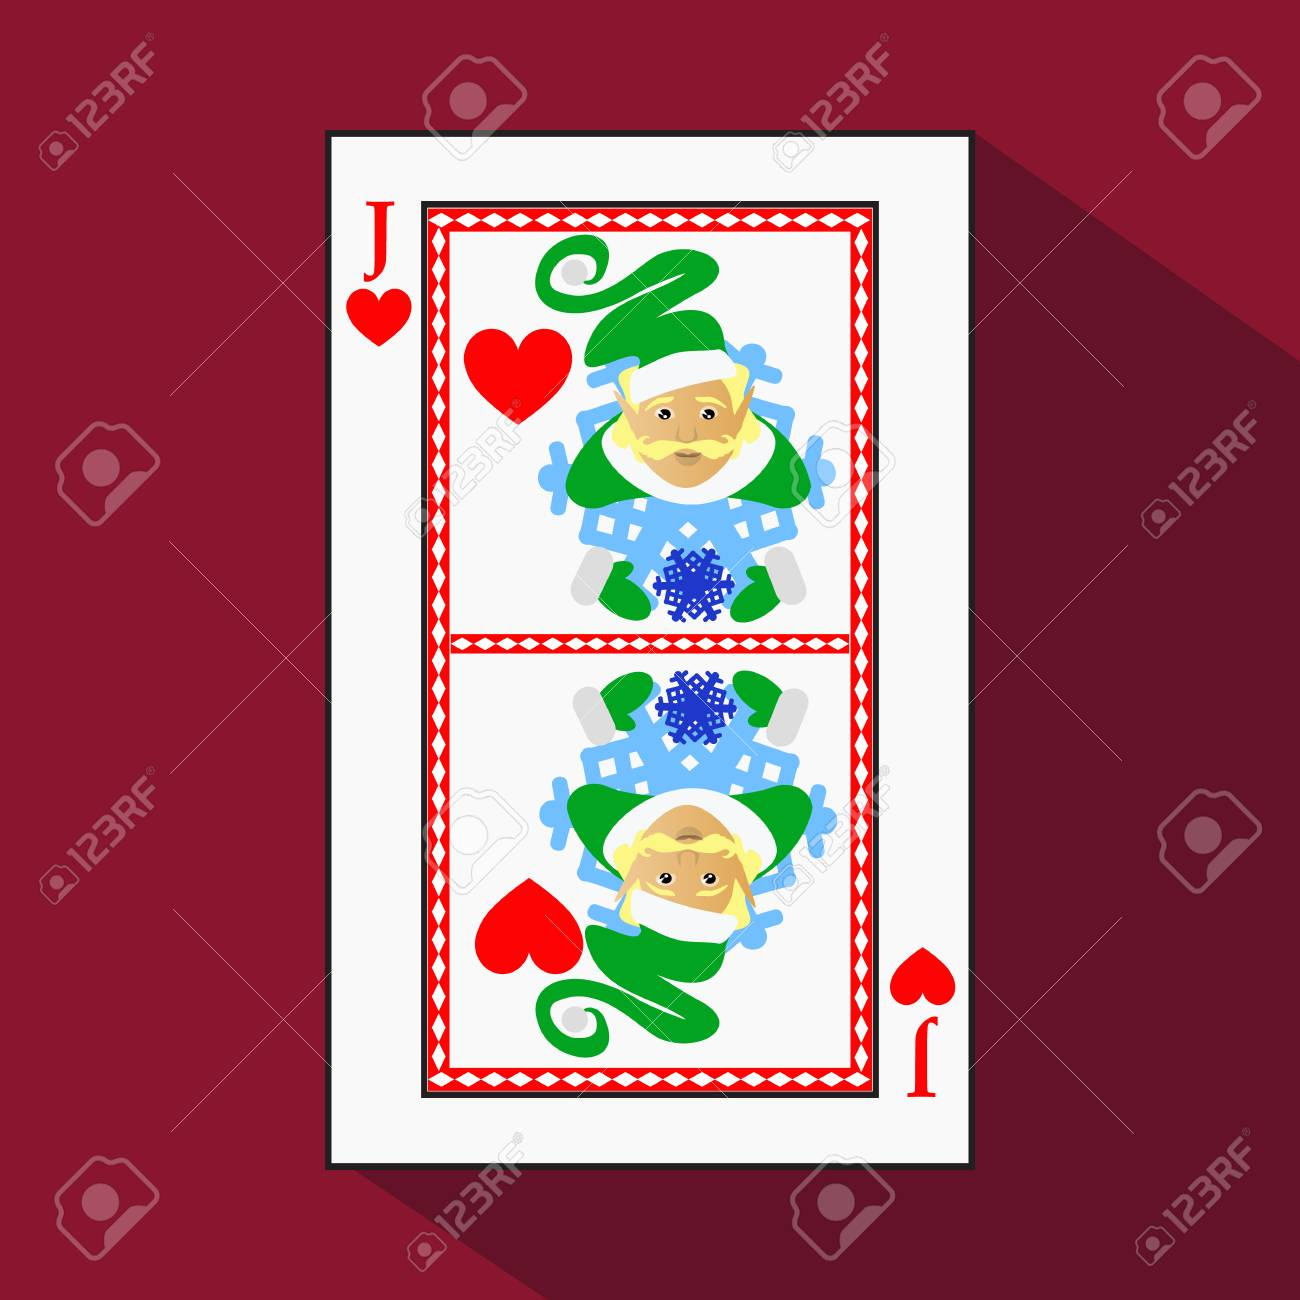 Joker Christmas.Playing Card The Icon Picture Is Easy Heart Jack Joker New